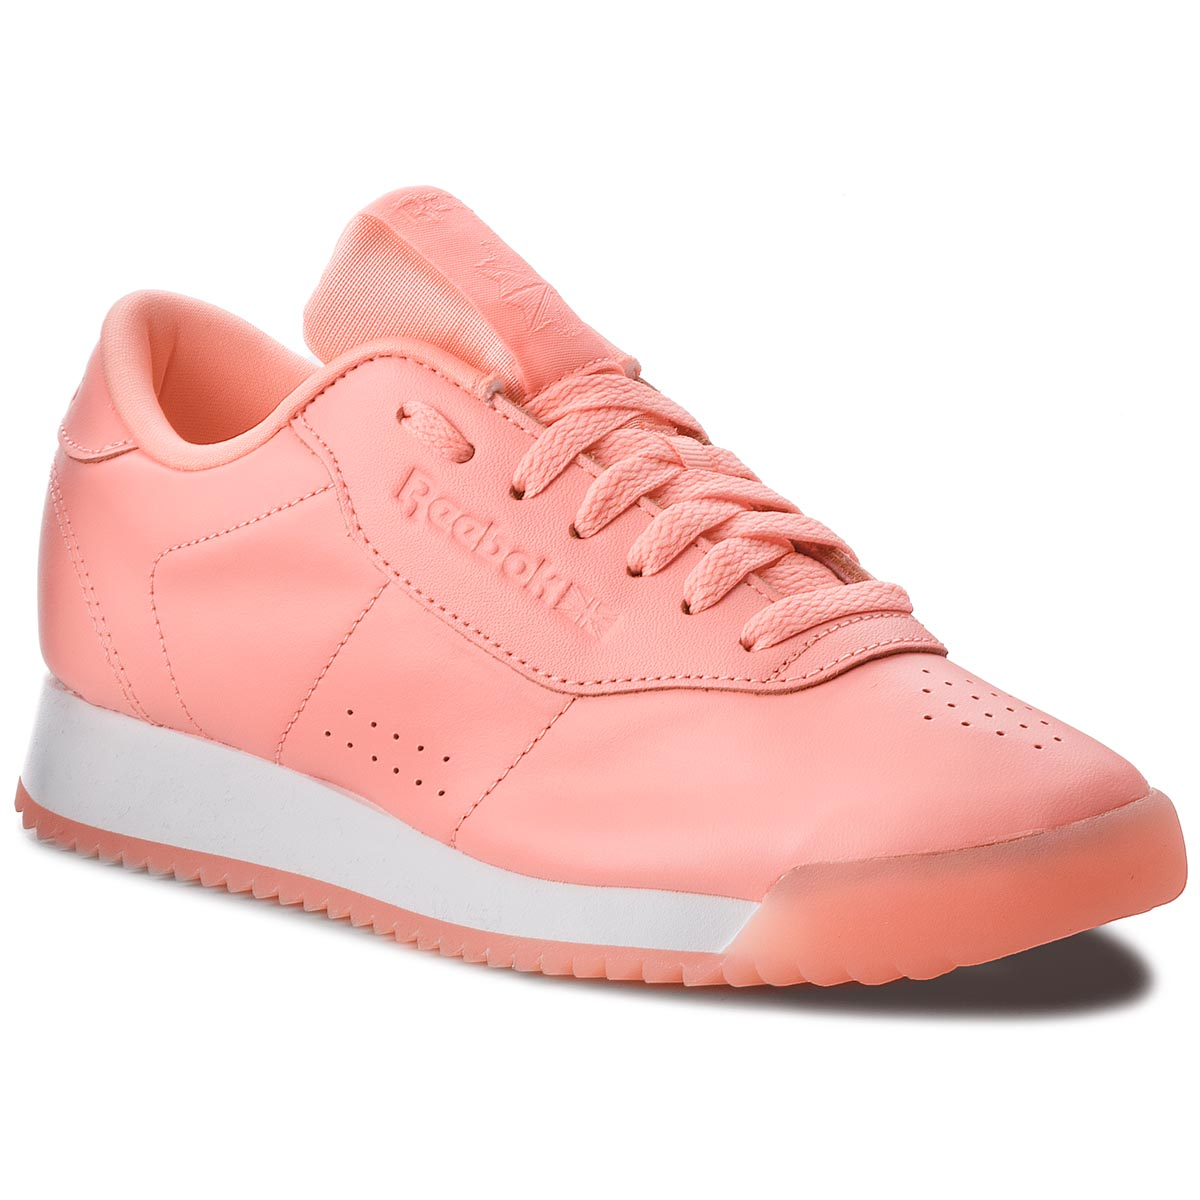 Buty Reebok - Princess Ripple CN5151 Digital Pink/Whit